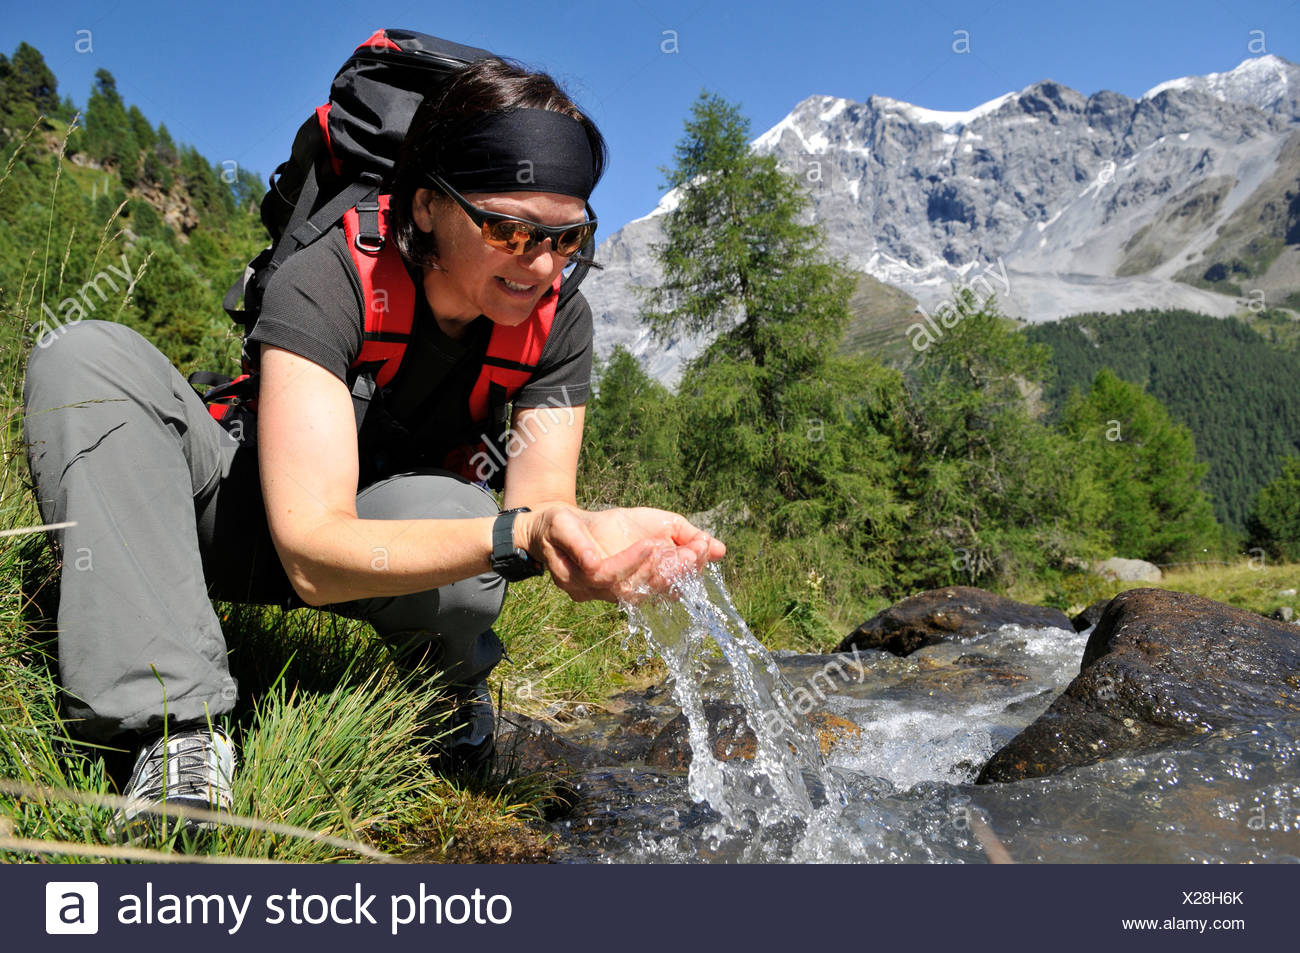 Female hiker drinking water from creek, Trentino-Alto Adige, Italy - Stock Image